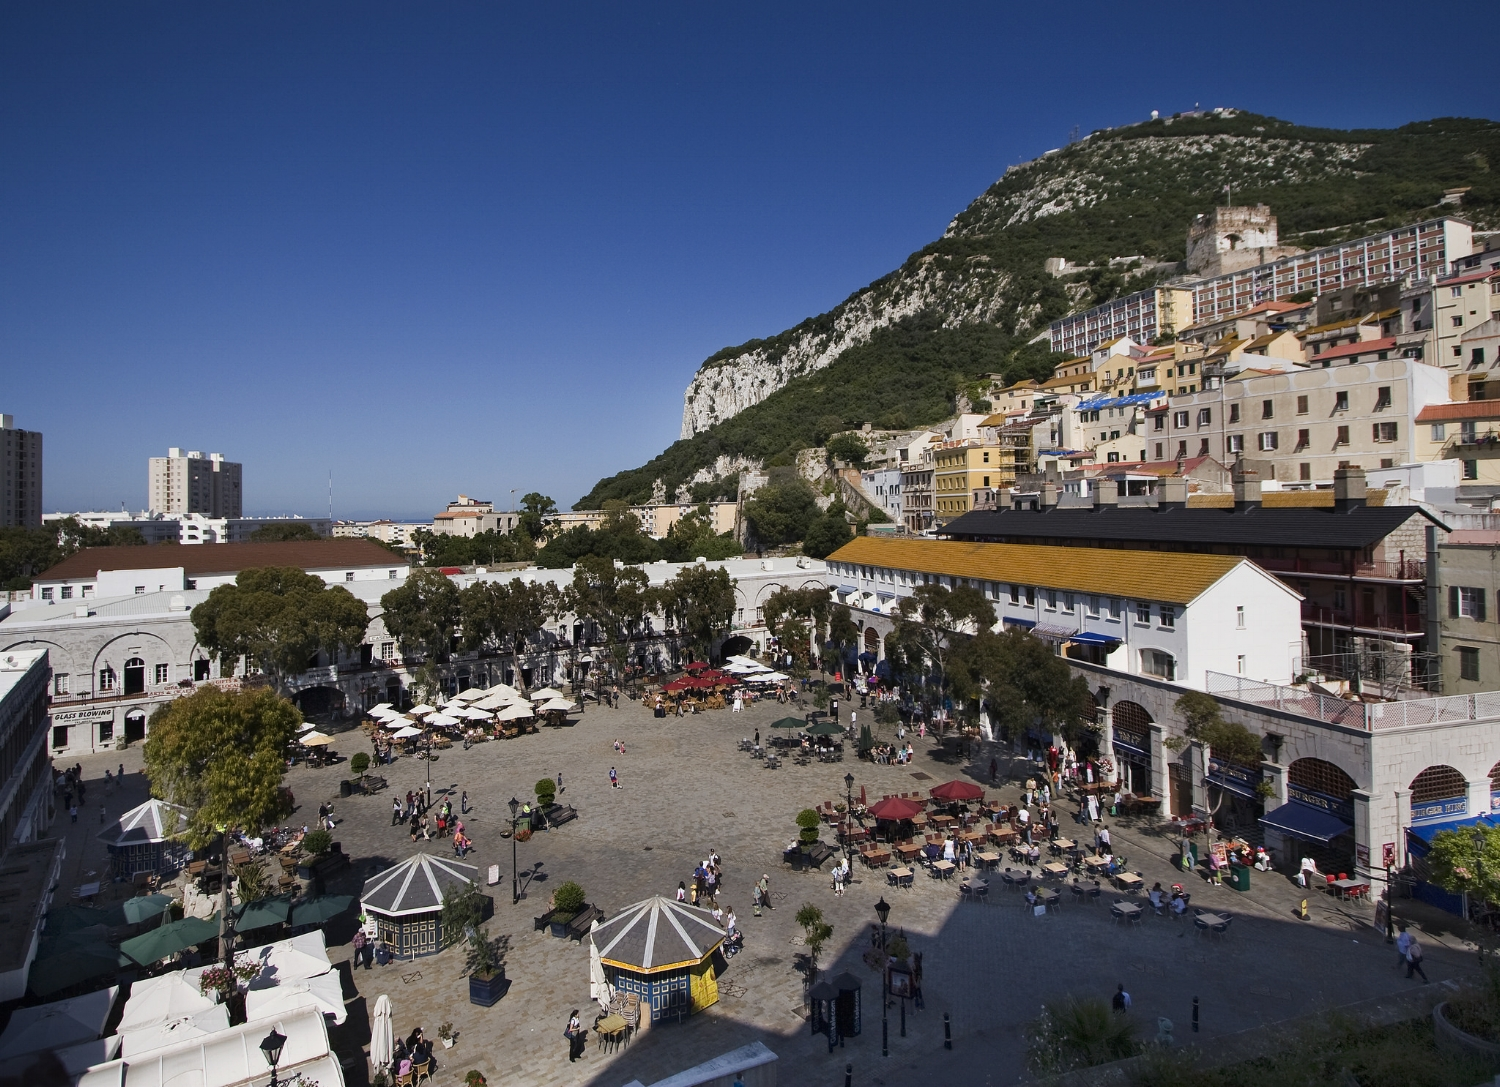 Grand Casemates Square was once the scene of public hangings